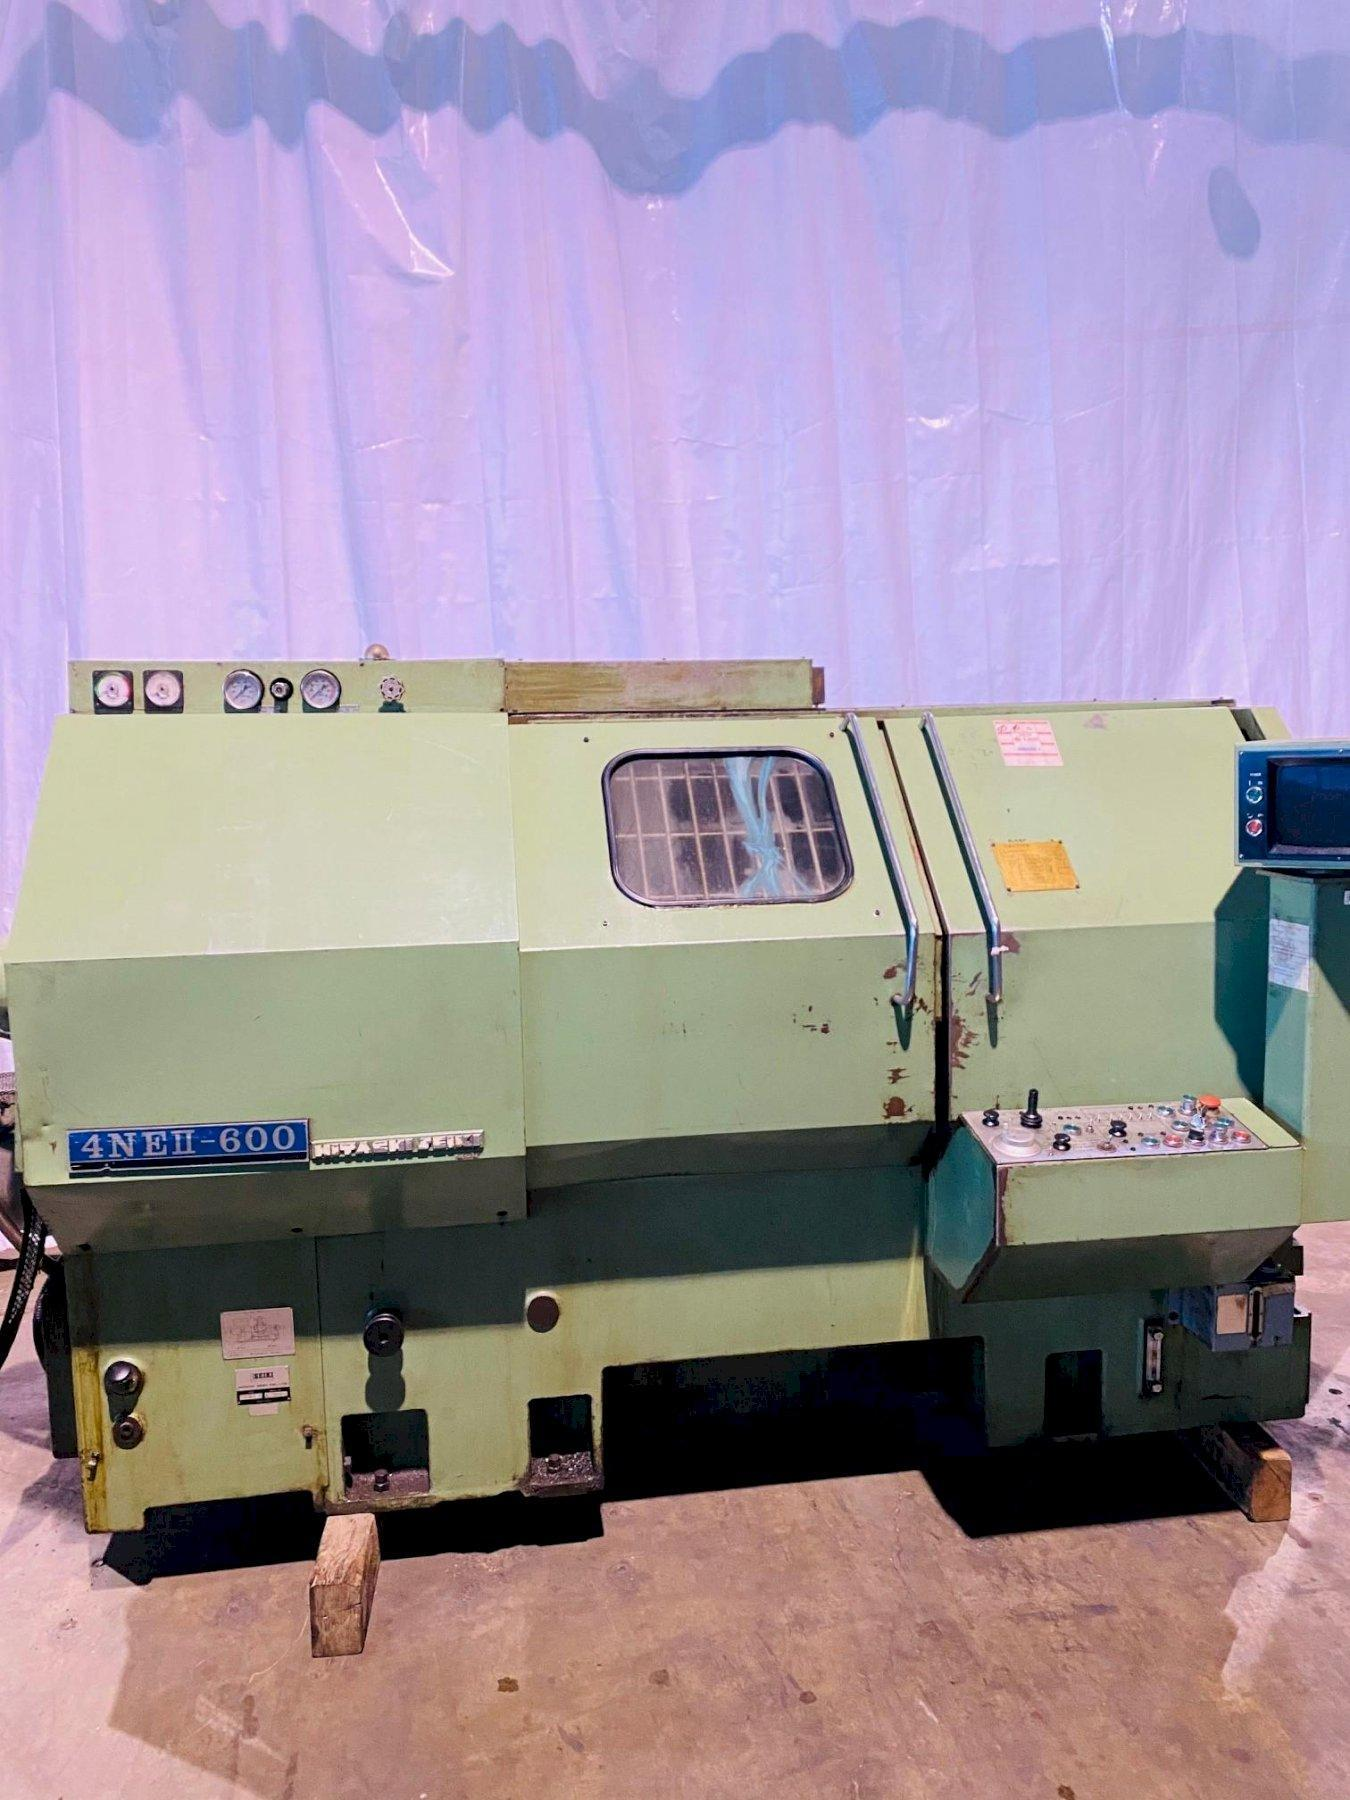 HITACHI- SEIKI MODEL 4NEII-600 CNC TURNING CENTER. STOCK # 0955420